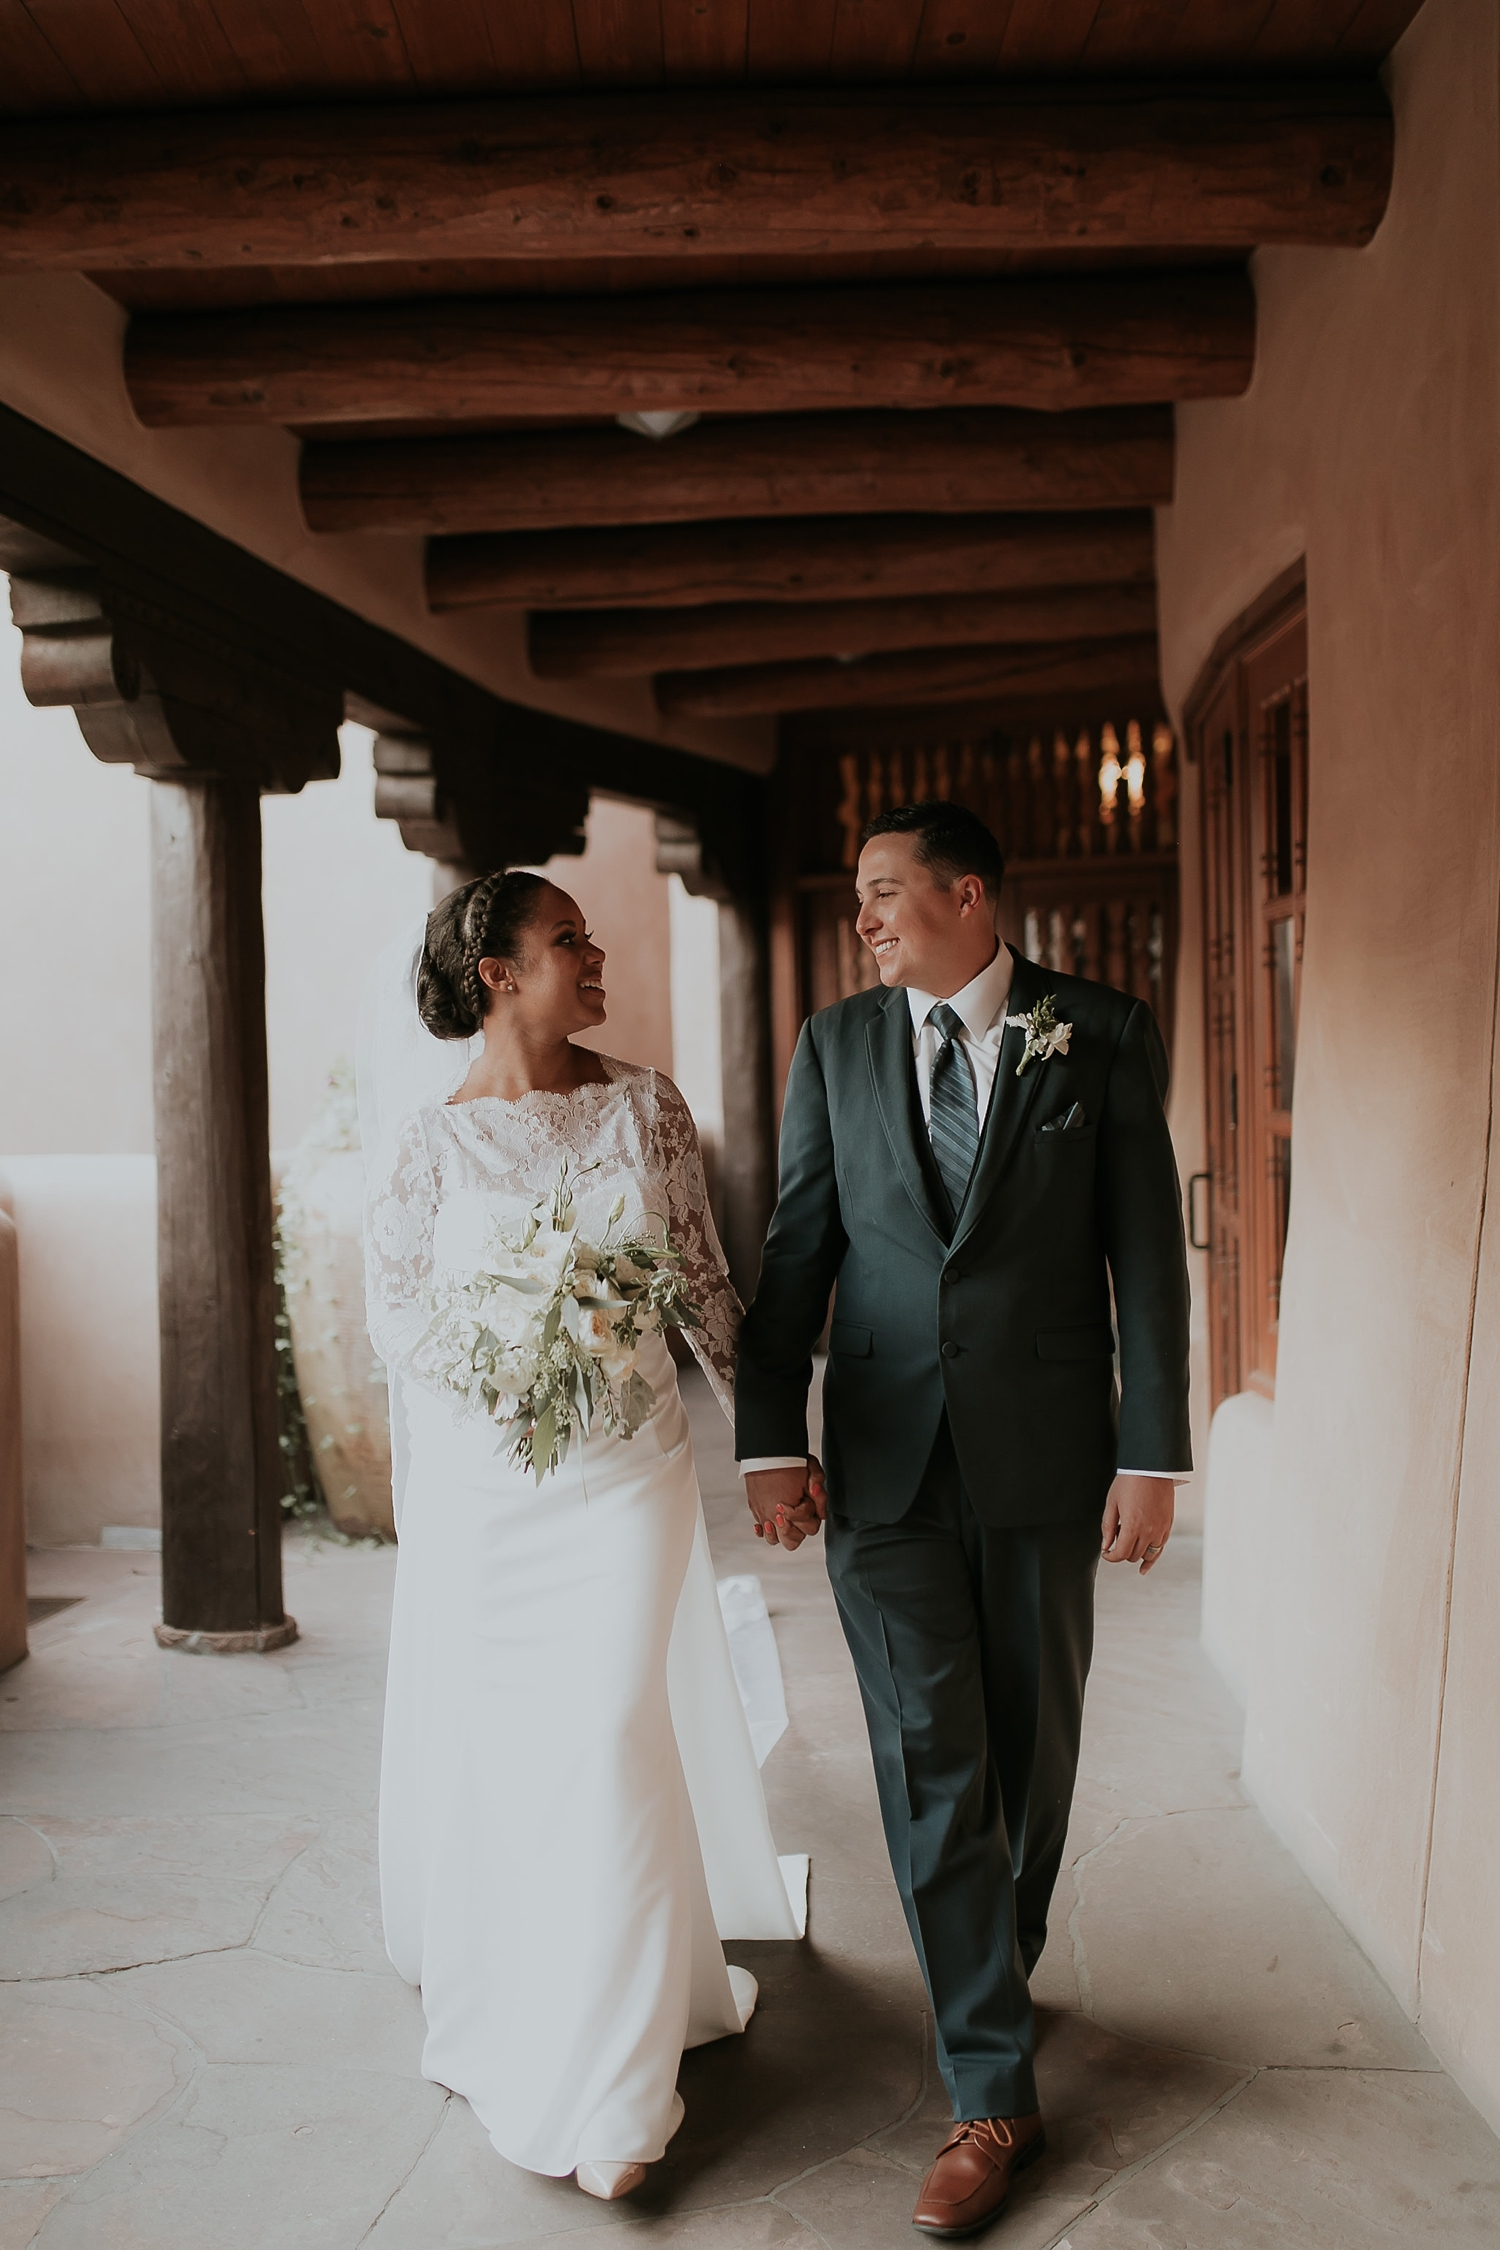 Alicia+lucia+photography+-+albuquerque+wedding+photographer+-+santa+fe+wedding+photography+-+new+mexico+wedding+photographer+-+new+mexico+engagement+-+la+fonda+new+mexico+wedding+-+la+fonda+fall+wedding_0070.jpg